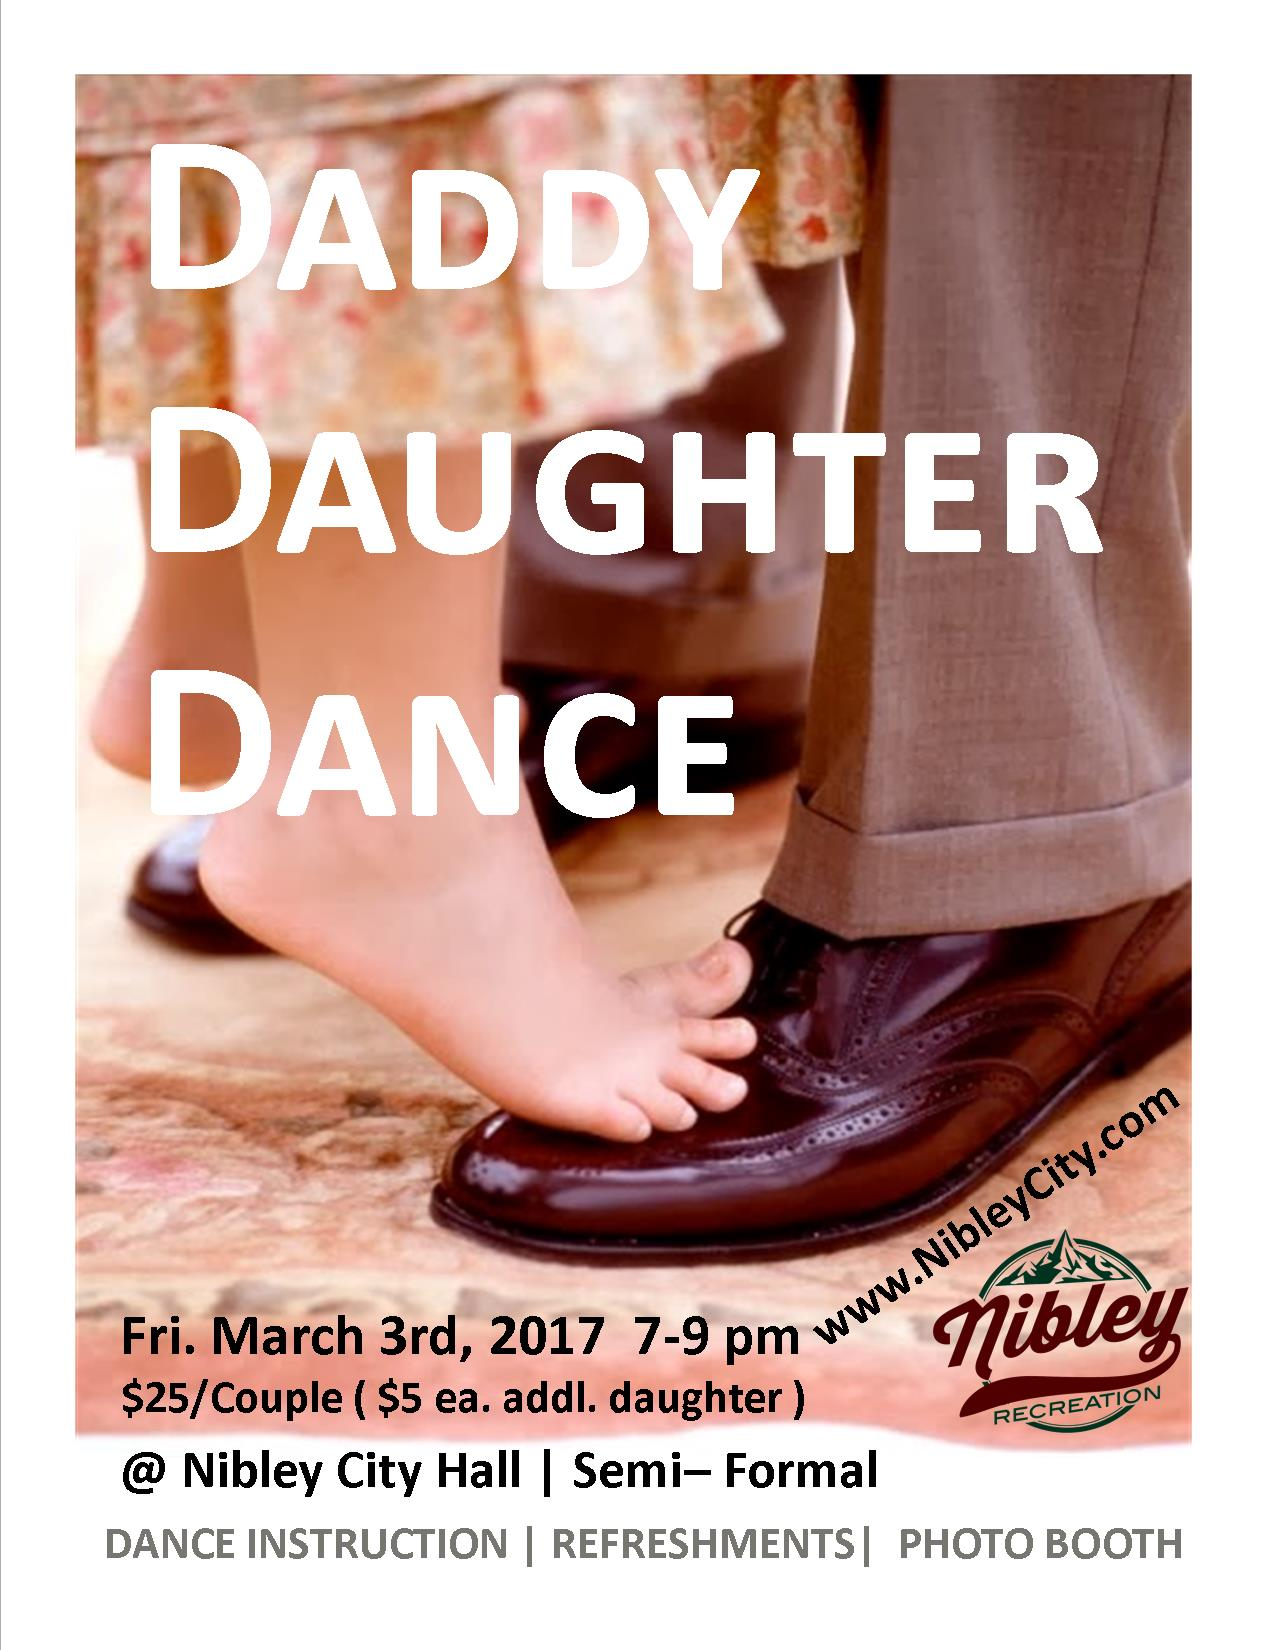 Daddy Daughter Dance Flyer 2017